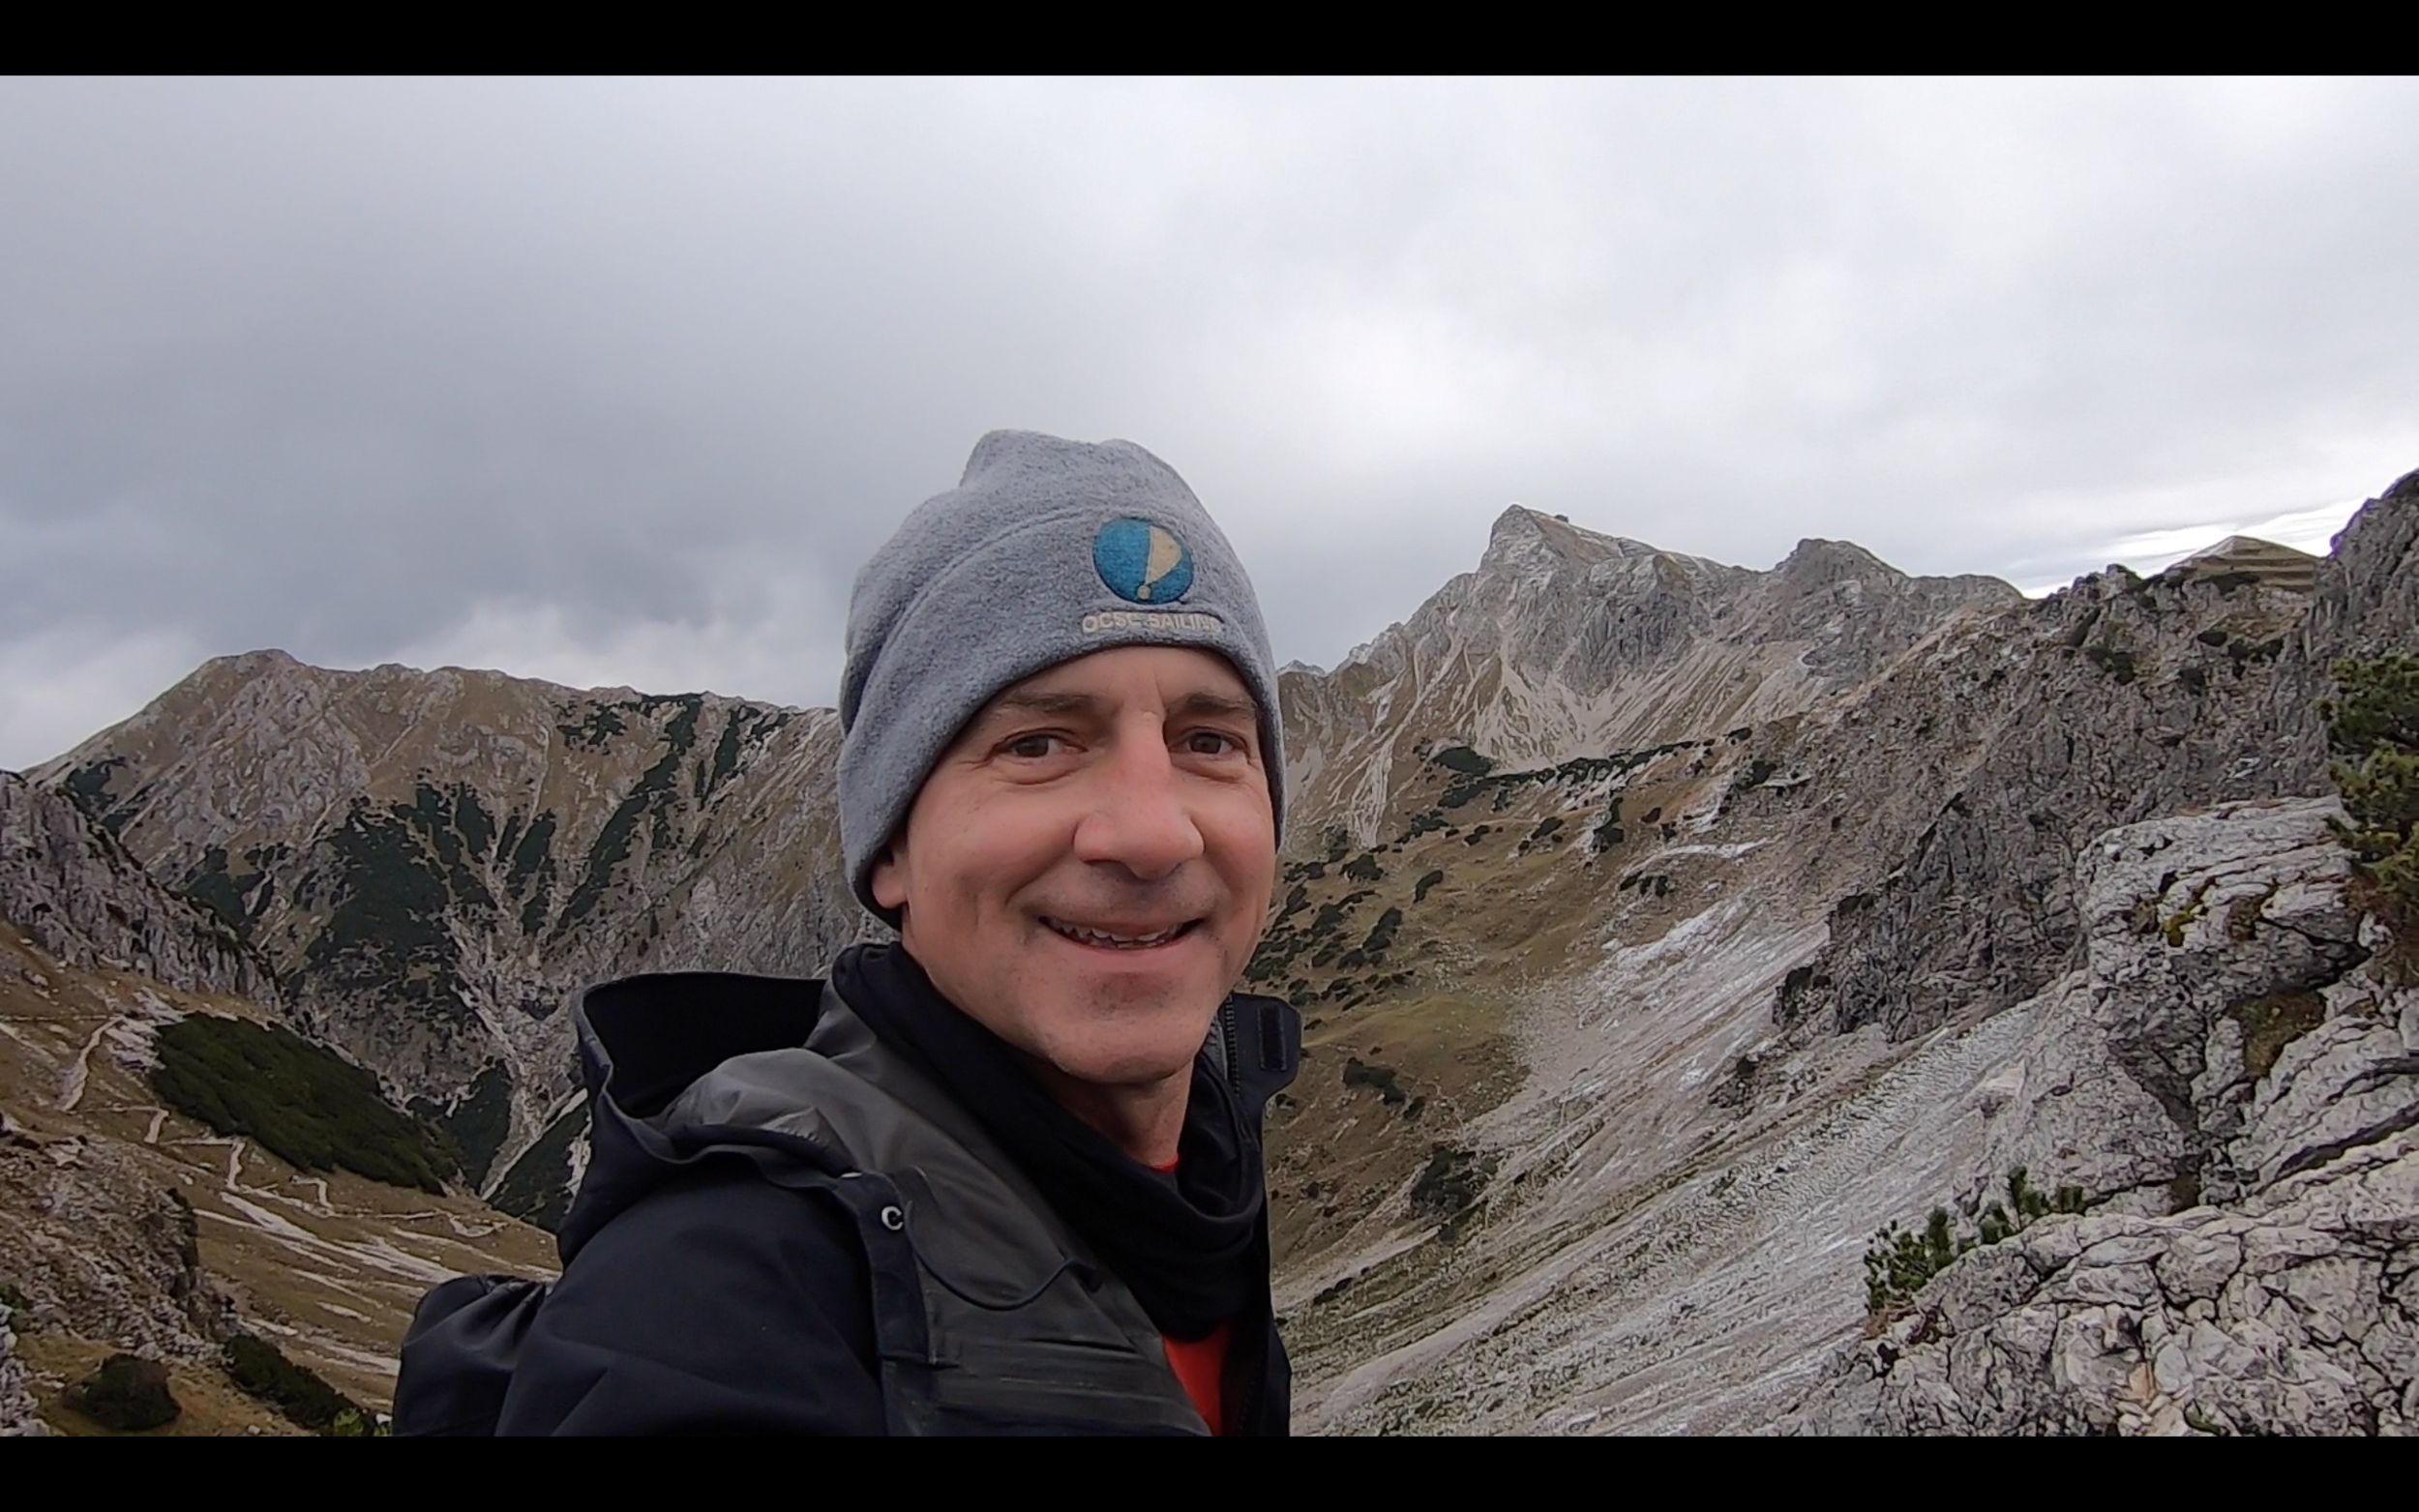 JUST 30 MIN FROM THE RUBIHORN PEAK. STOPPING FOR A SELFIE AS THE SNOW FLURRIES START!